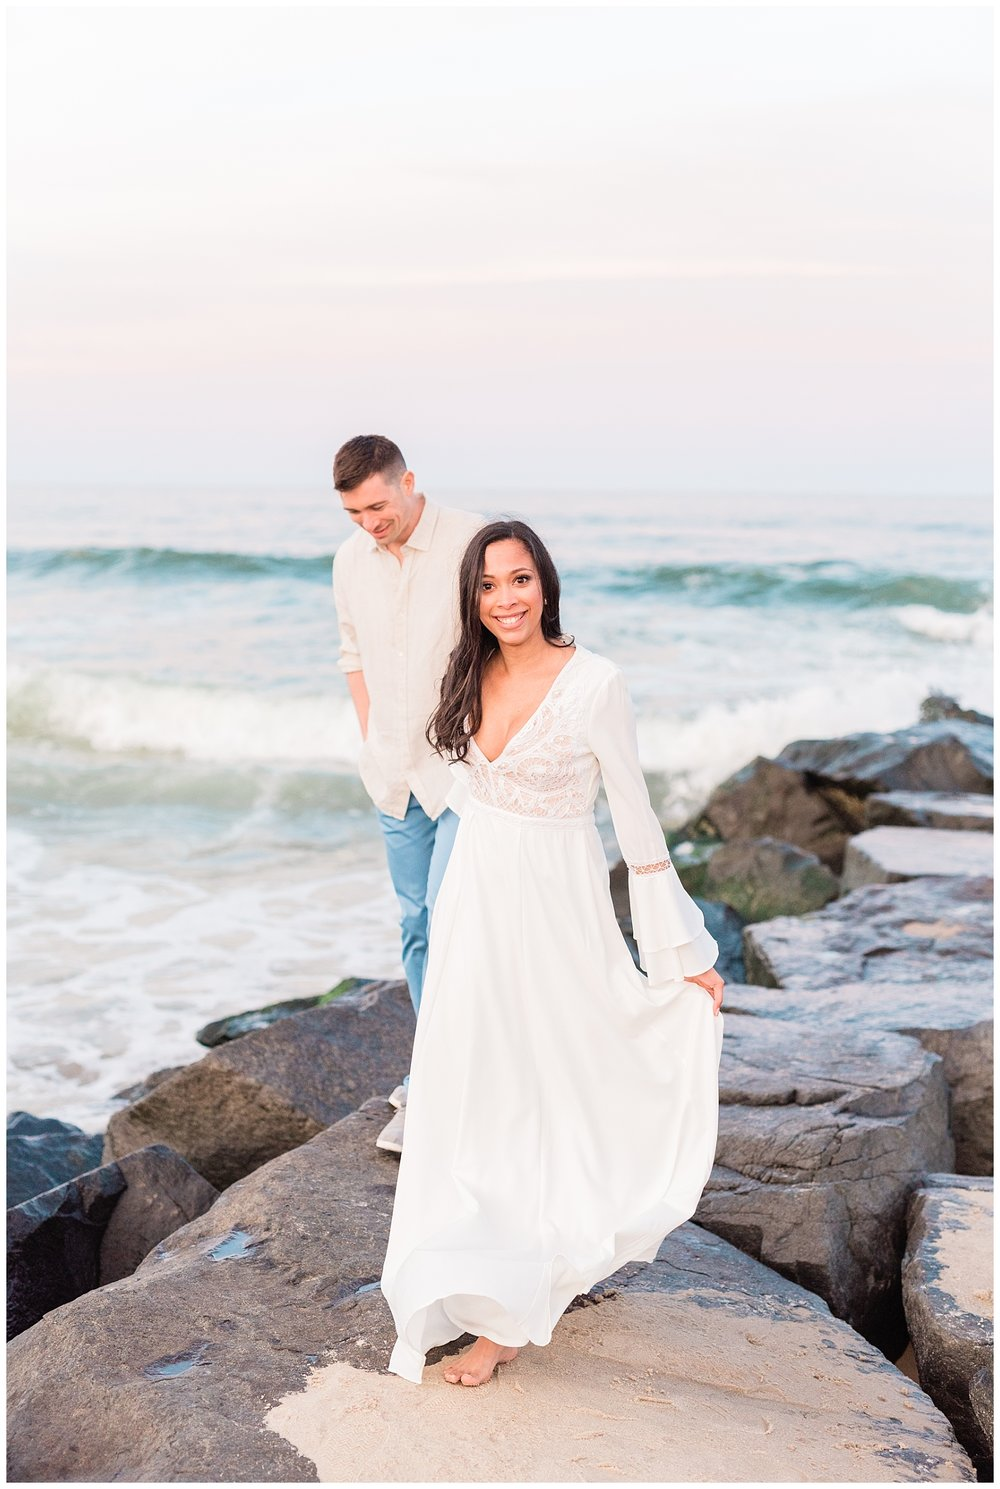 Spring-Lake-Divine-Park-Beach-Spring-Cherry-Blossom-NJ-Engagement-Session-Photo_0057.jpg